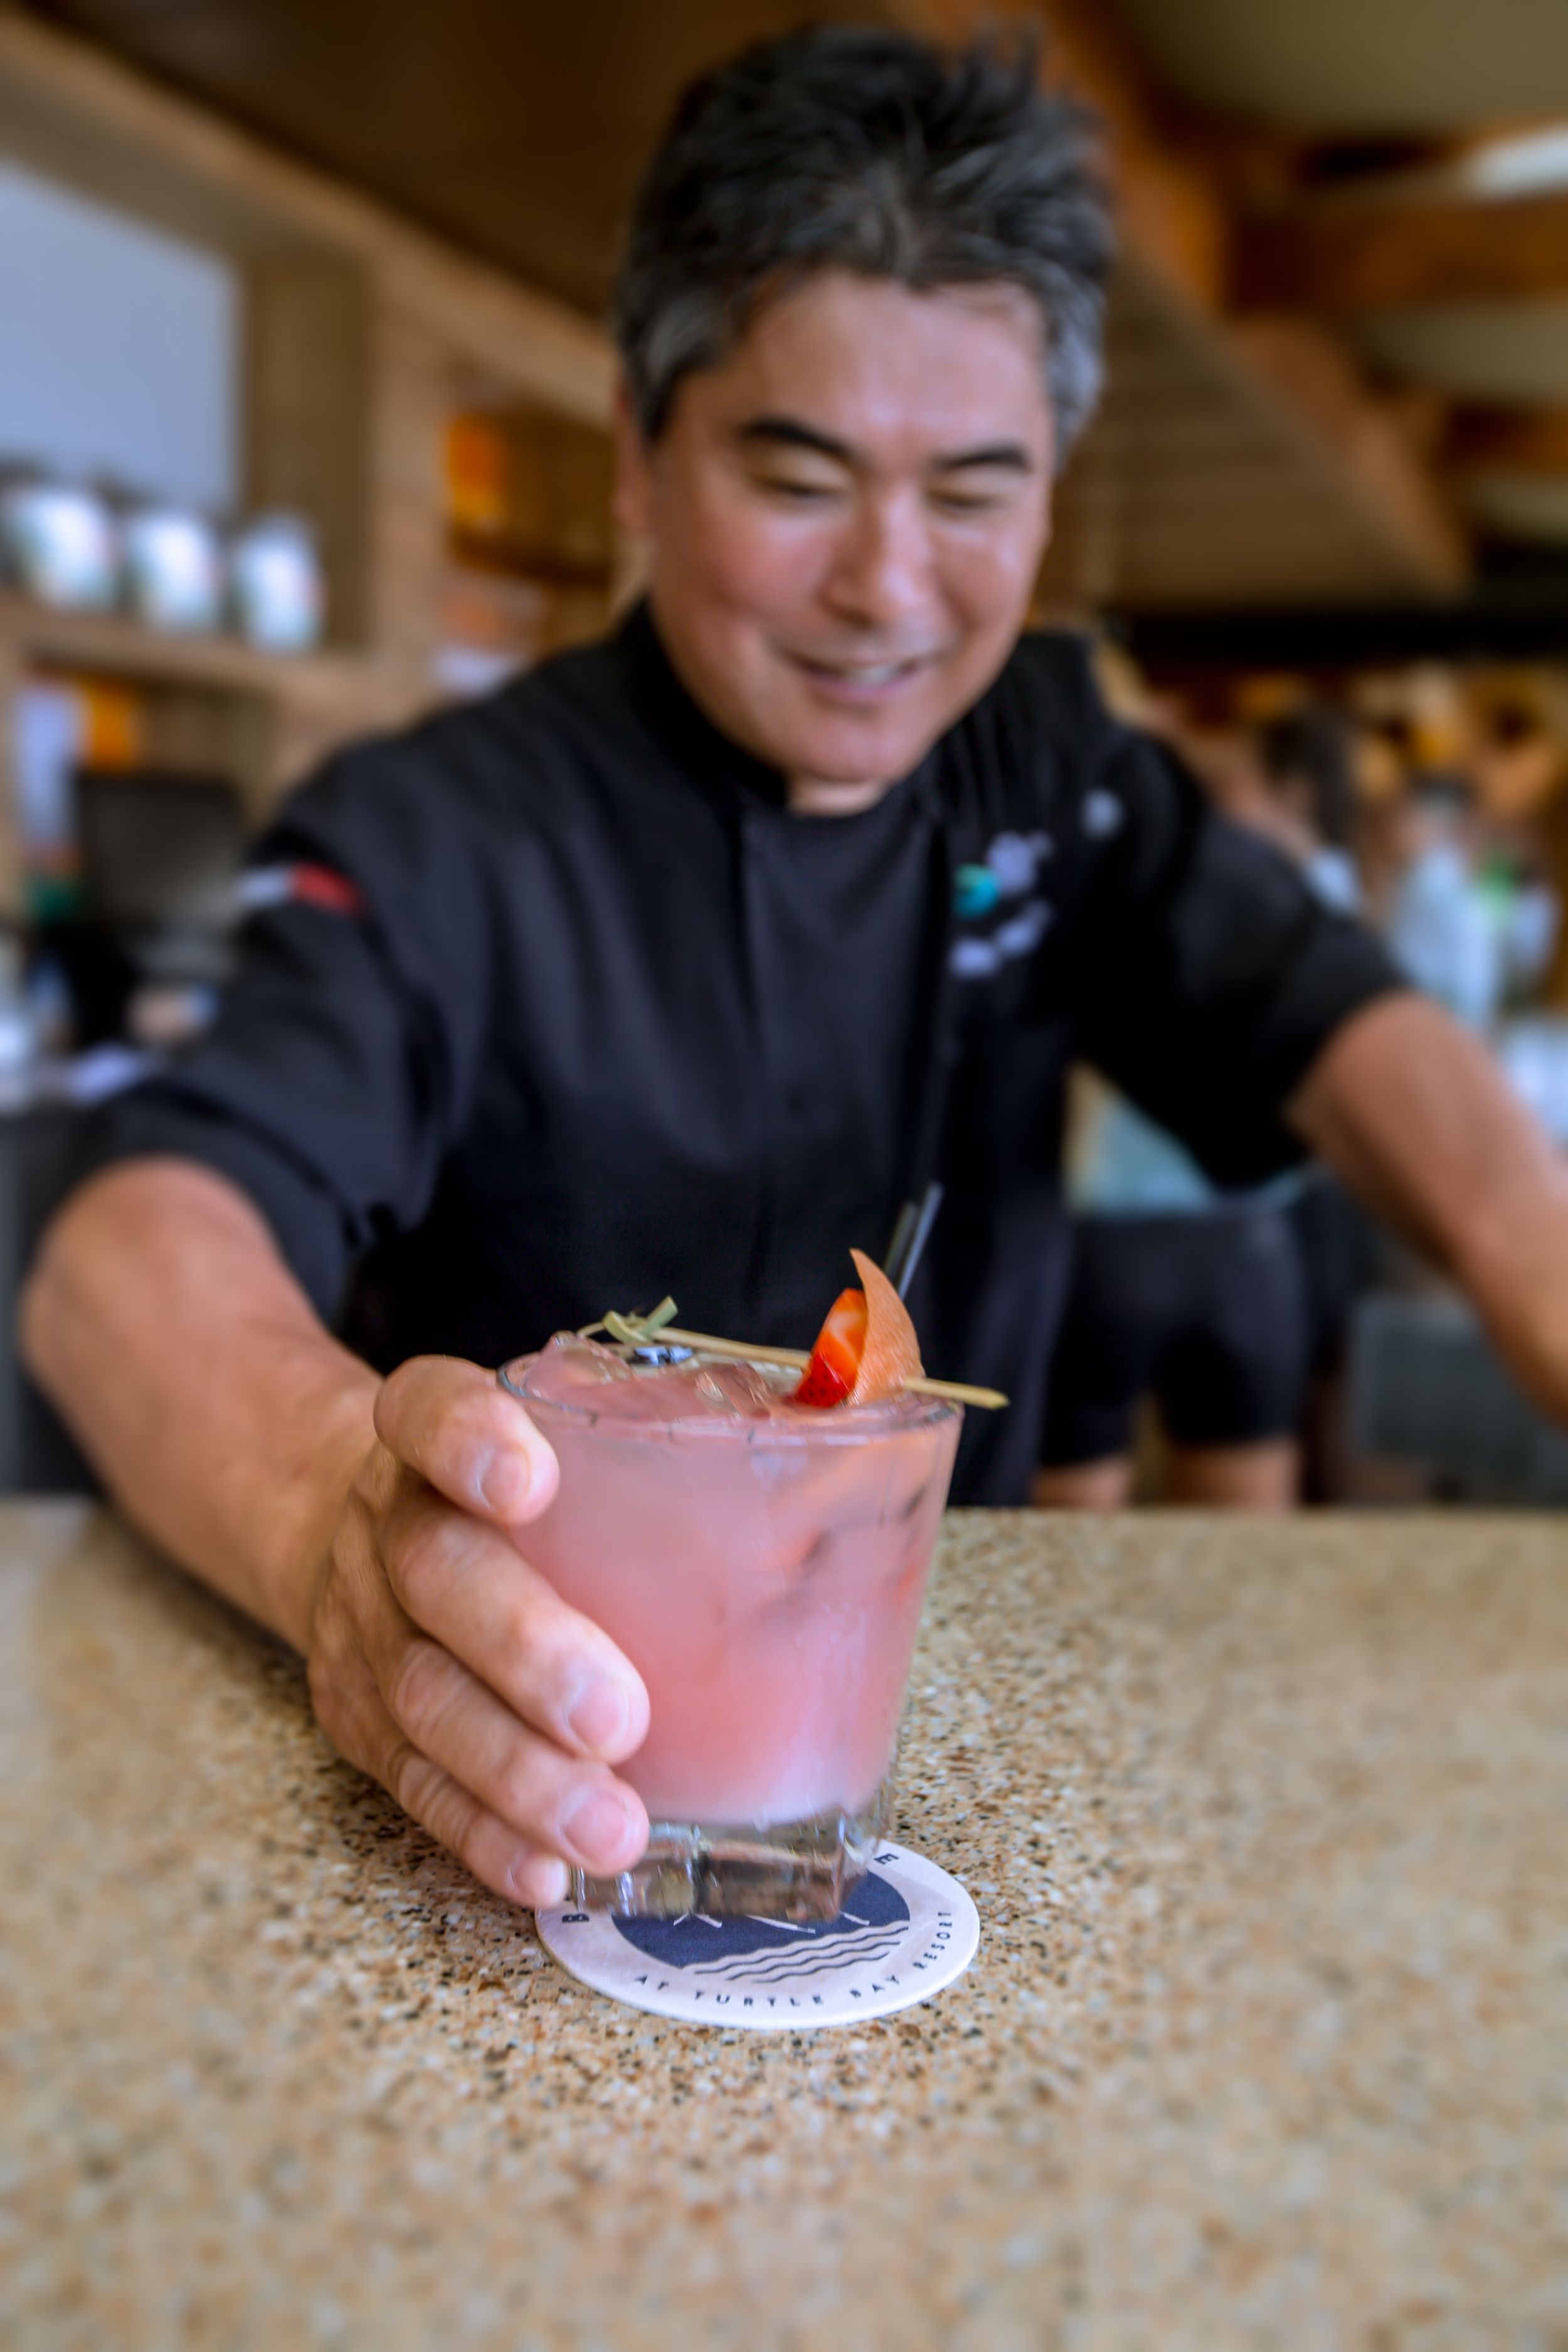 Chef Roy Yamaguchi serving up a signature #RoysBeachHouse cocktail. Wave Watching | Kai Vodka, Lemon Juice, housemade Lavender syrup, strawberry puree & coconut water.